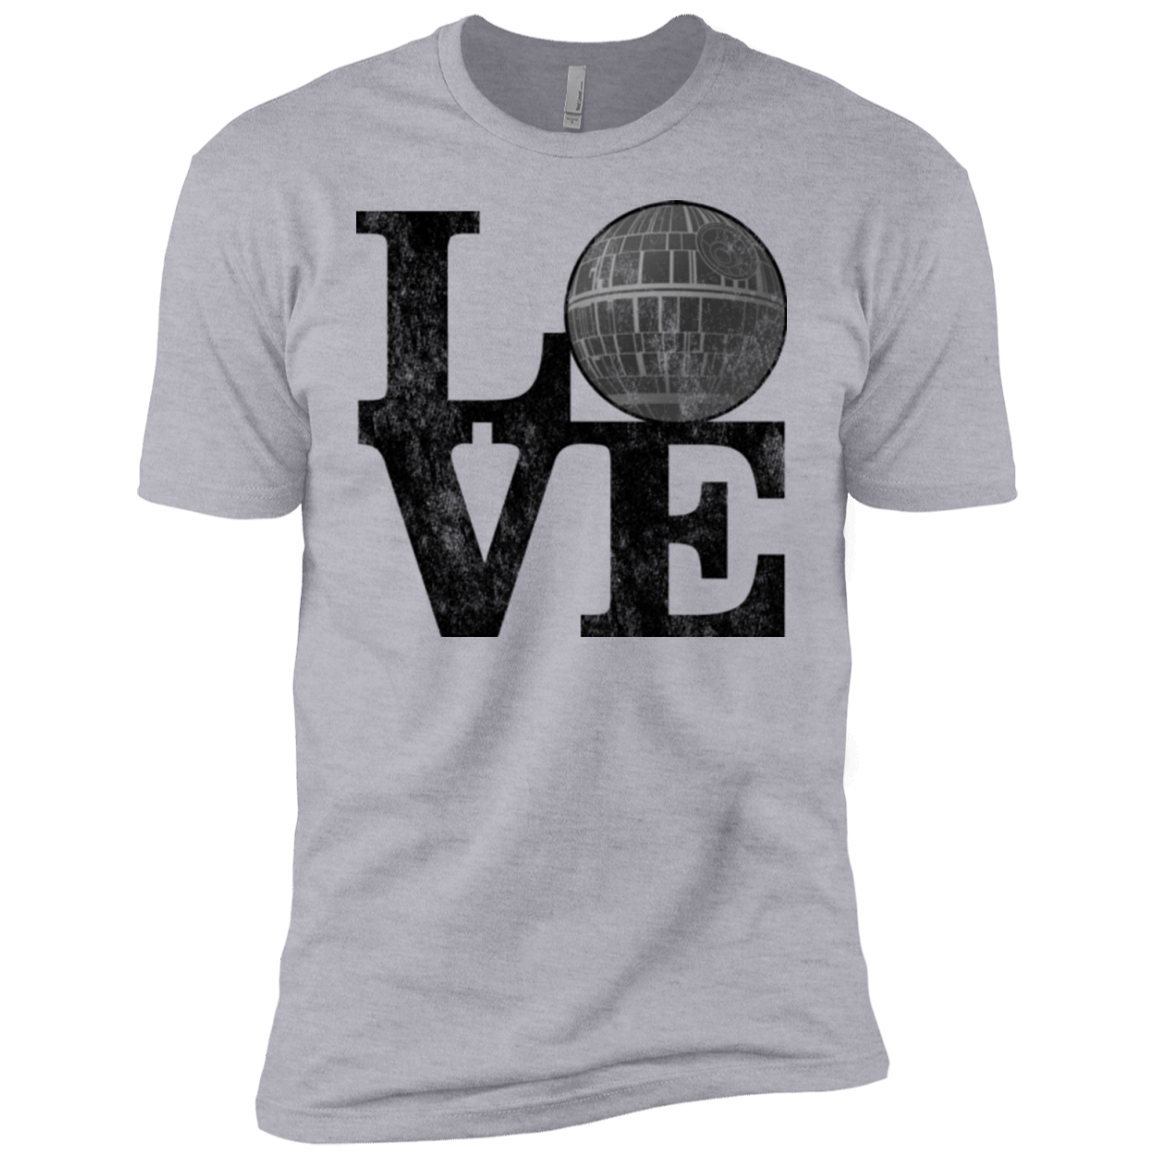 LOVE Deathstar 1 Boys Premium T-Shirt